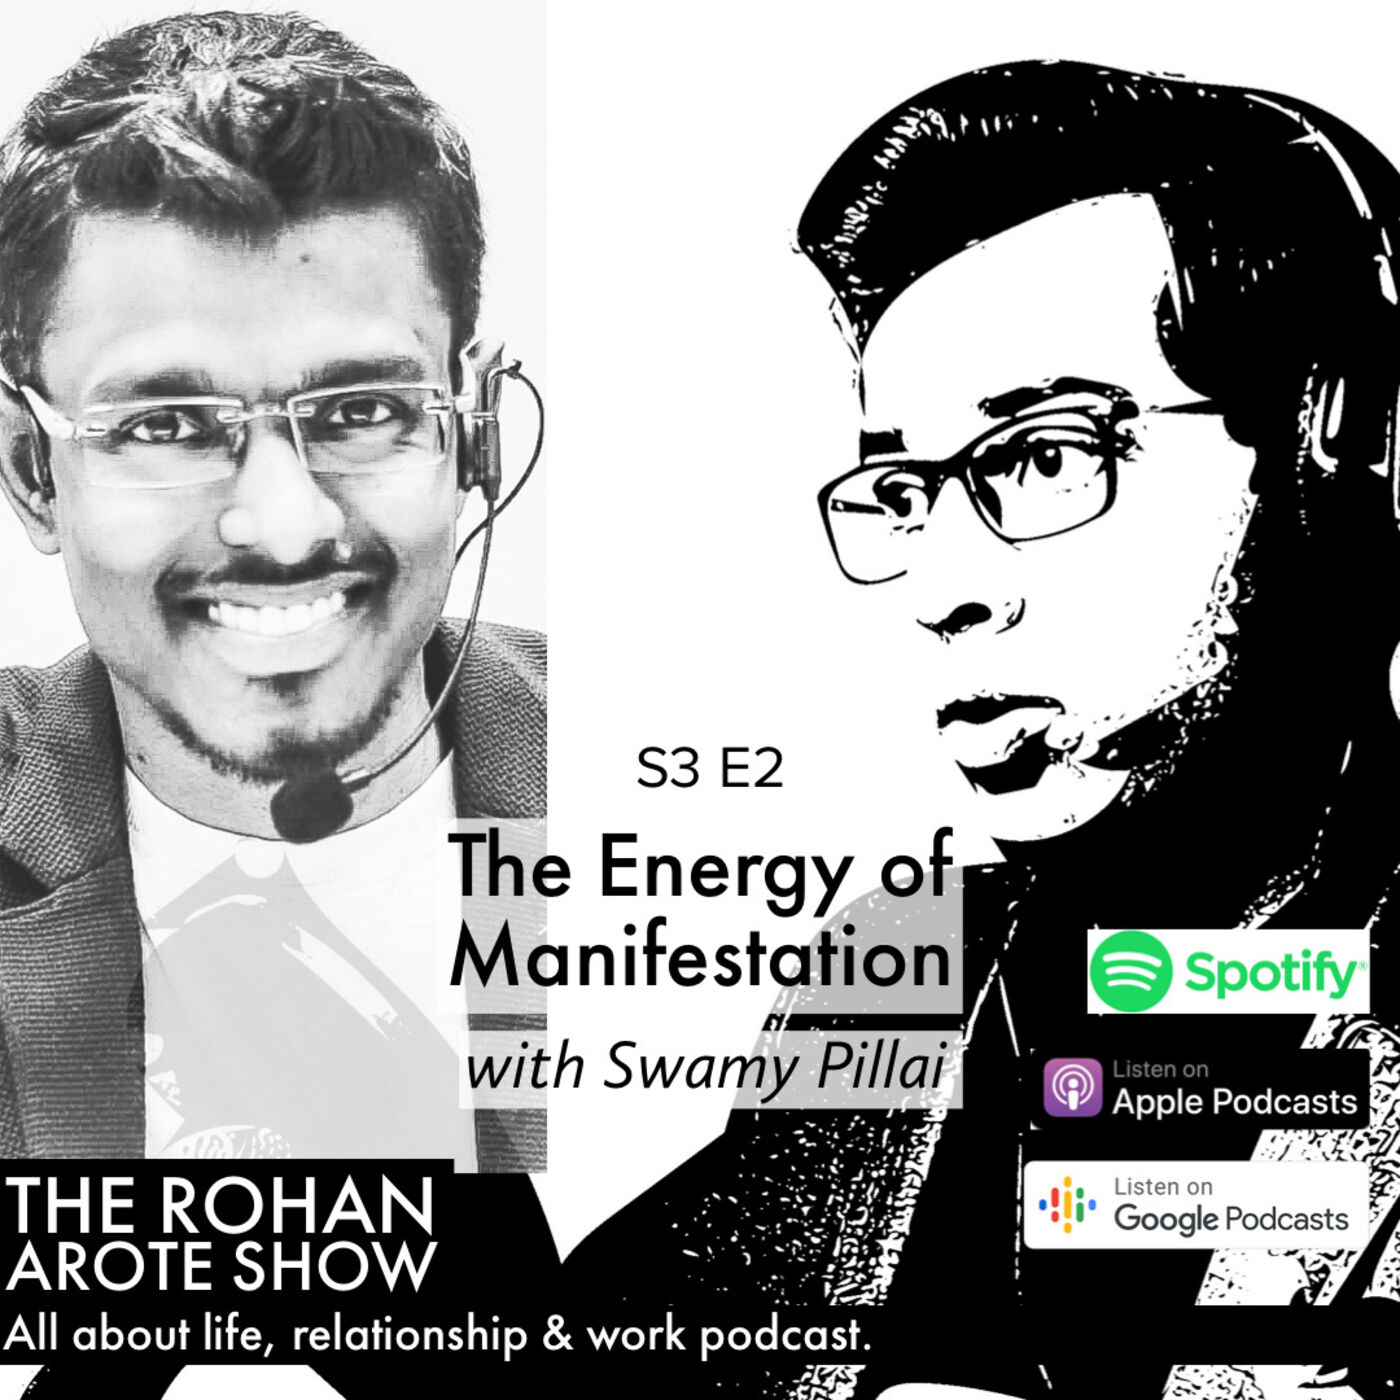 The Energy of Manifestation with Swamy Pillai